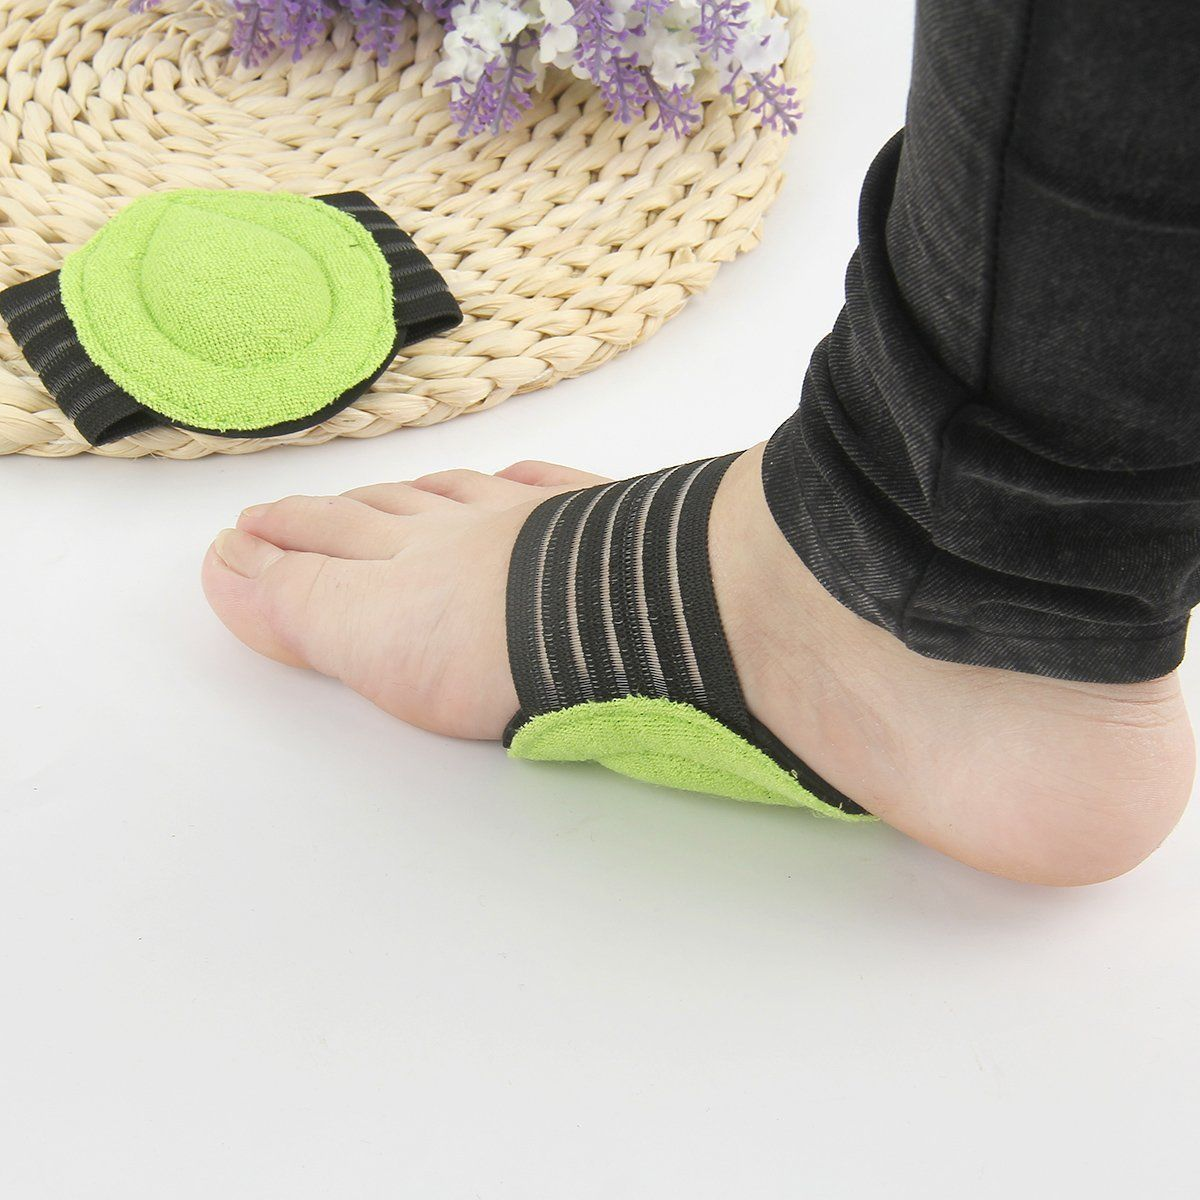 f790b927be Foot Heel Pain Relief Plantar Fasciitis Insole Pads & Arch Support Shoes  Insert